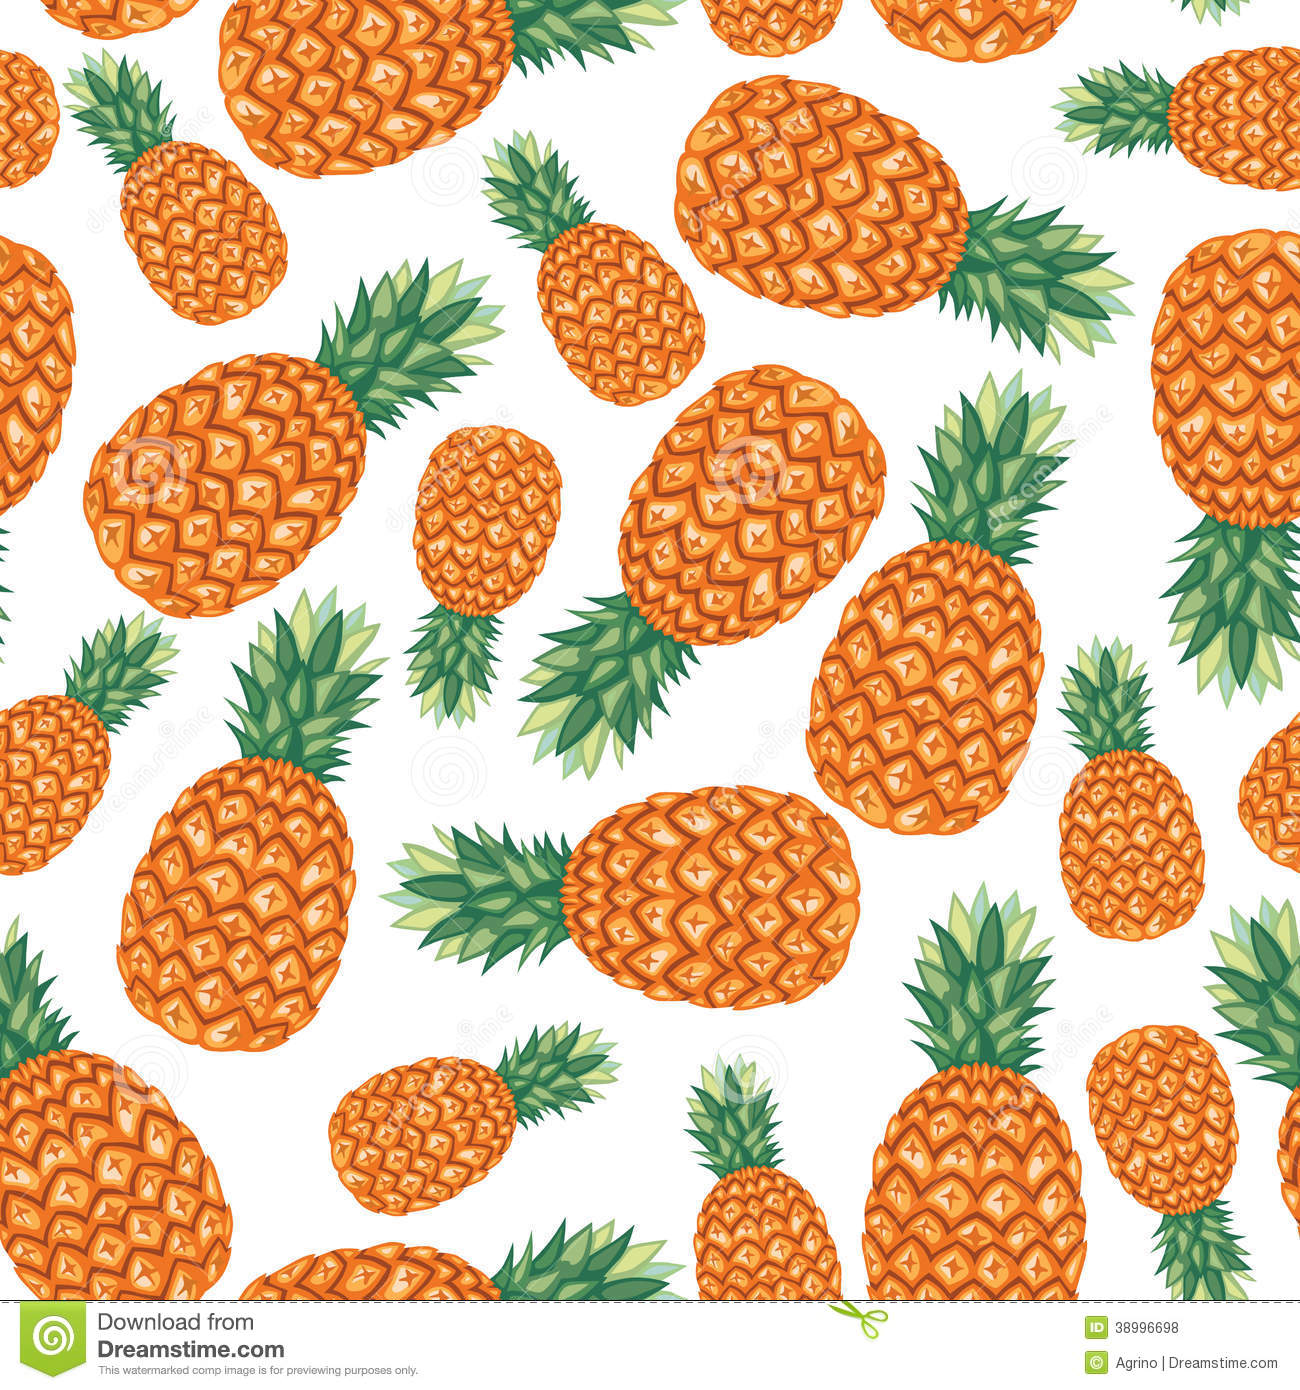 Cute Pineapple Iphone Wallpaper Pineapples Fruit Pattern Seamless Stock Vector Image